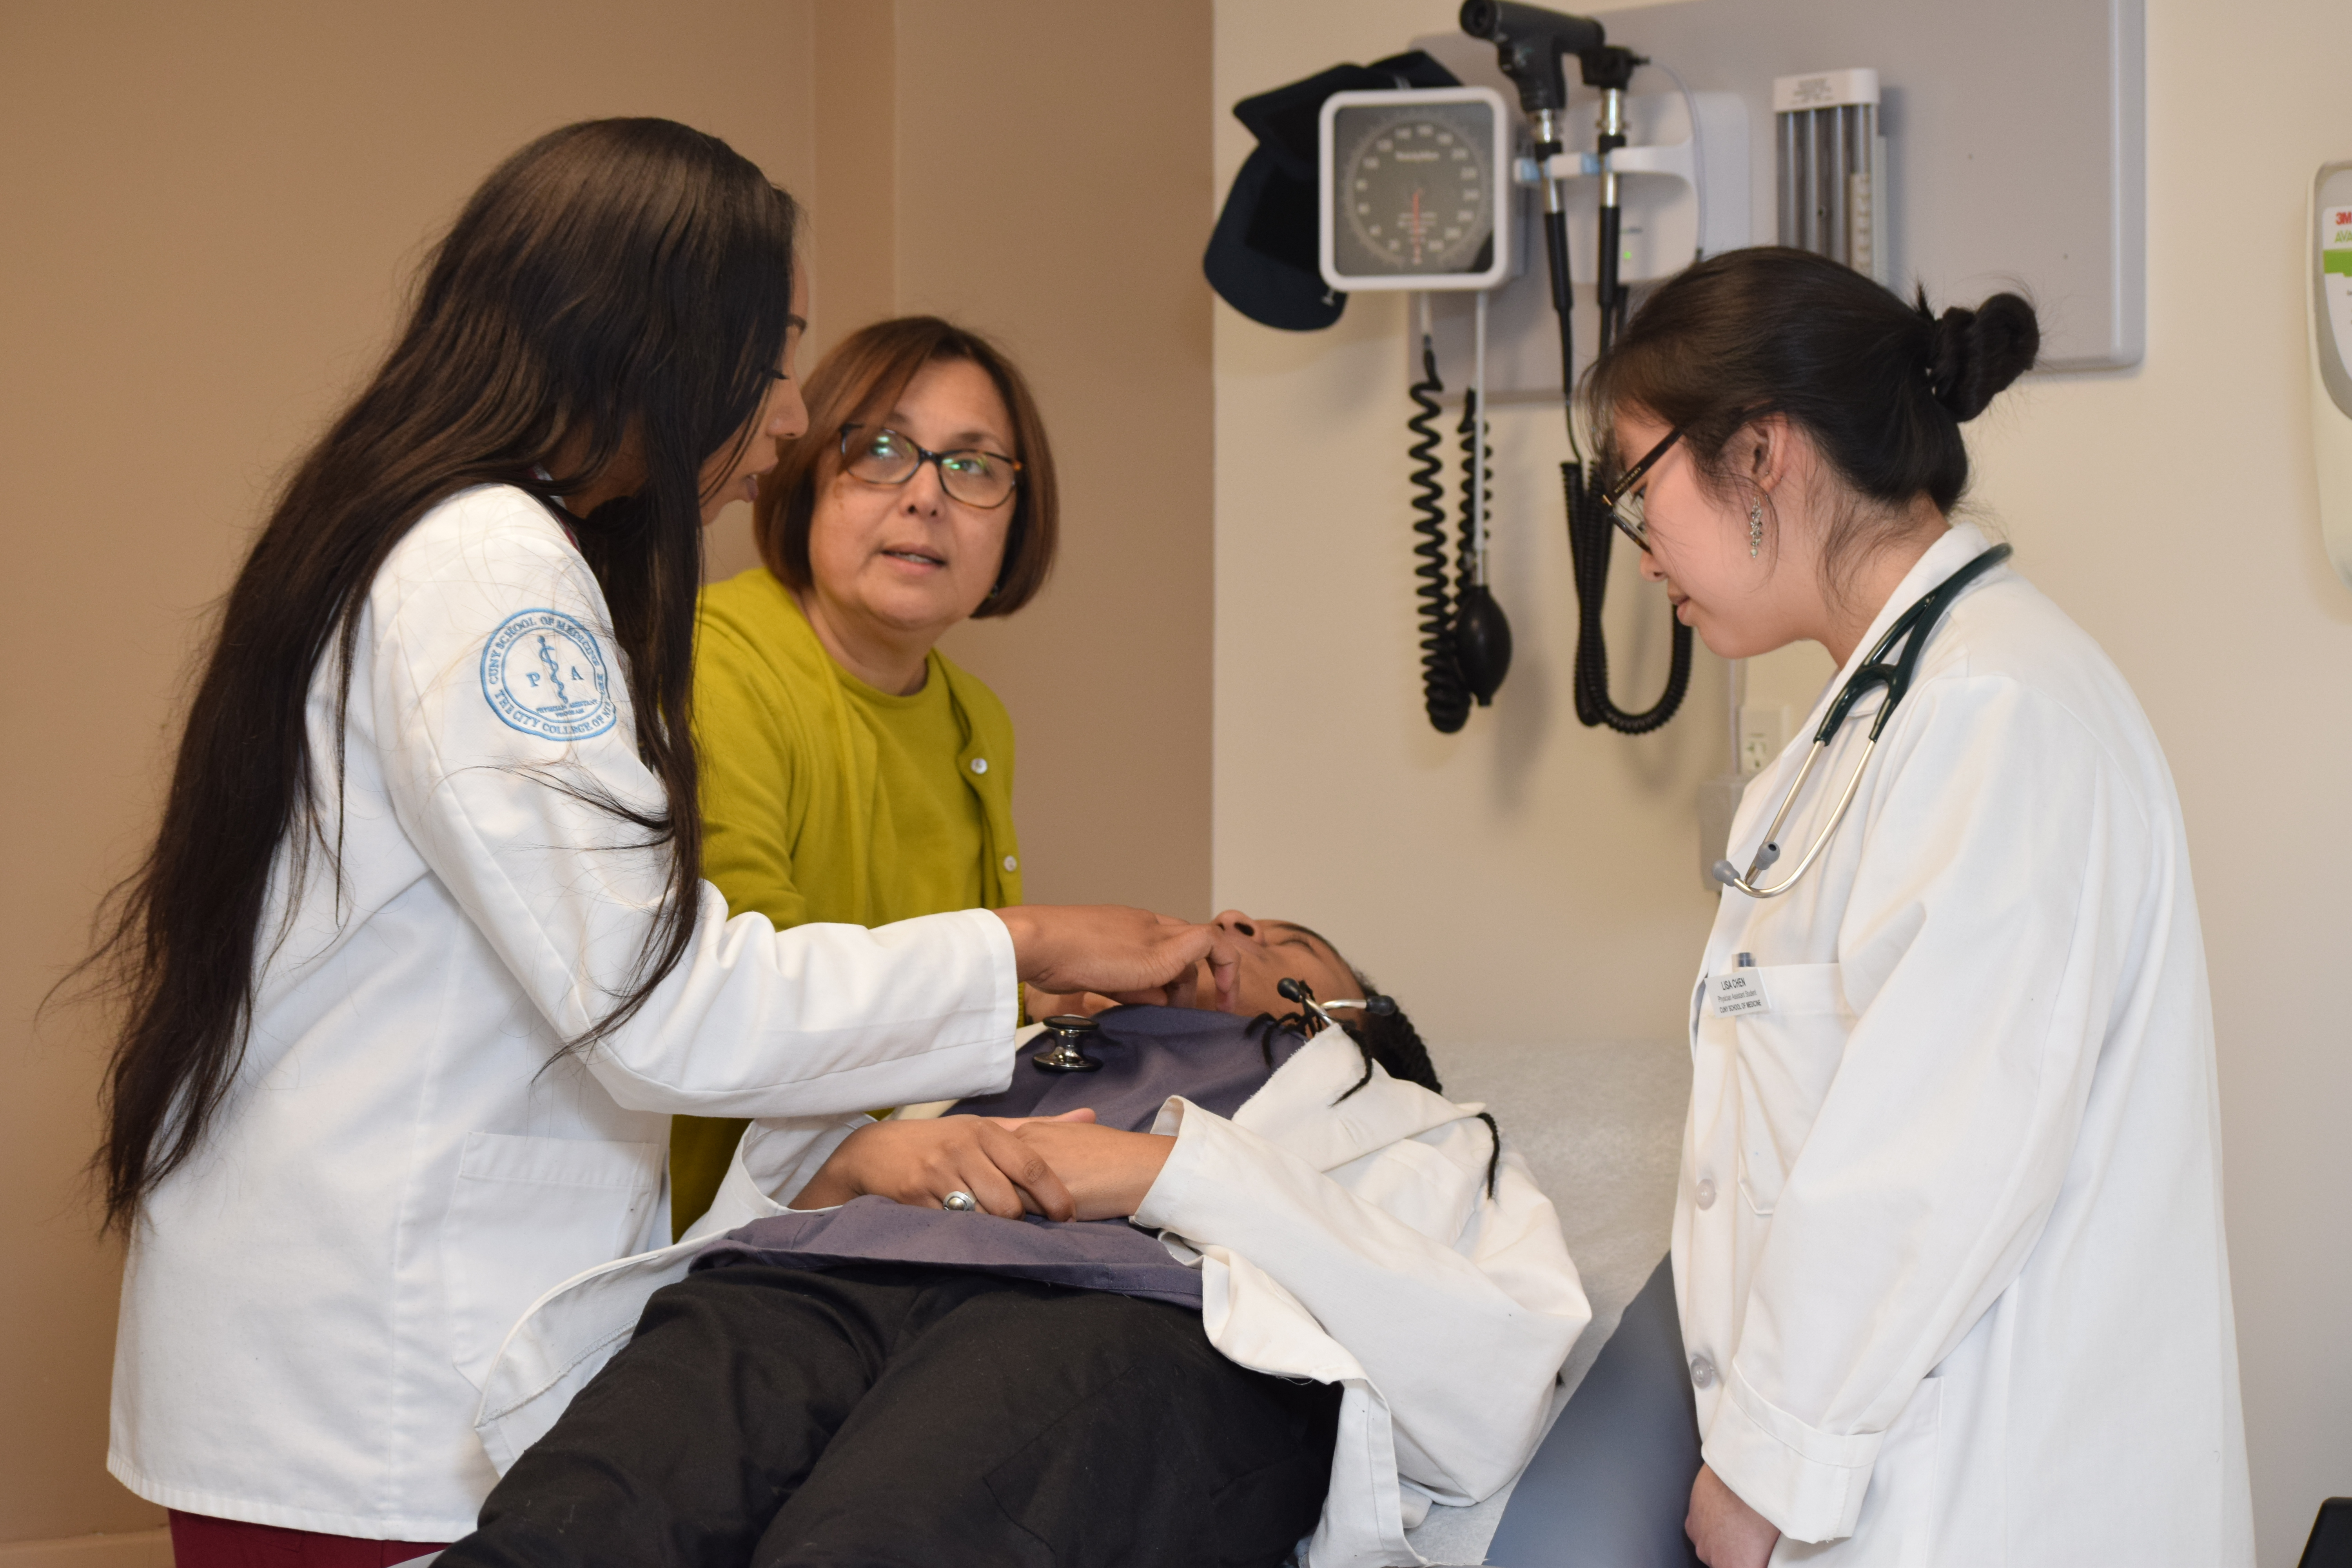 The Physician Assistant Program | The City College of New York